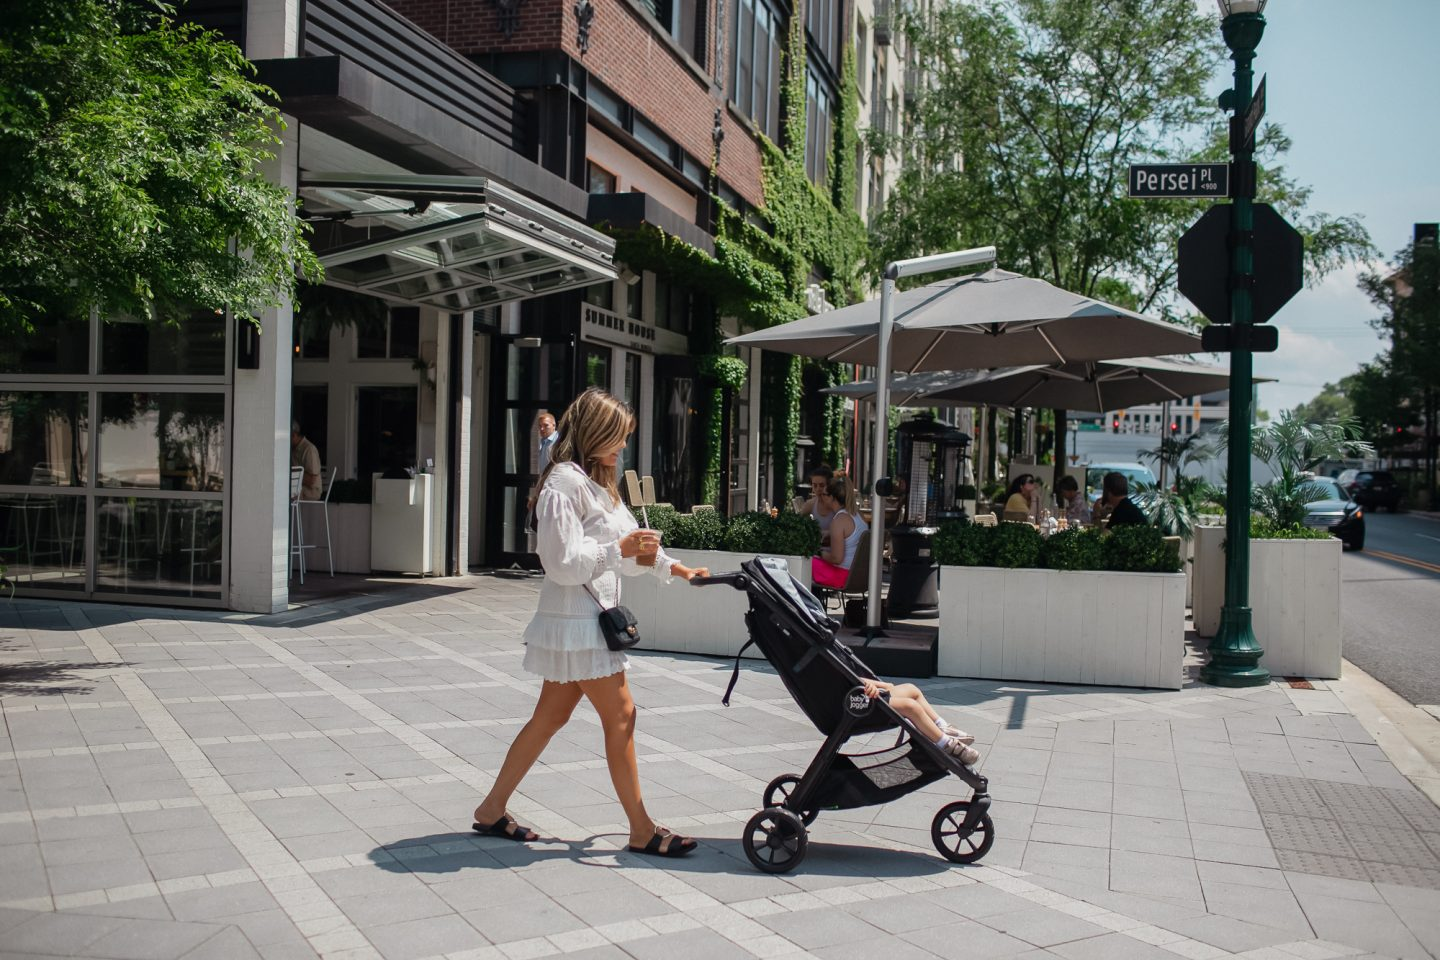 Baby Jogger: Strolling with my GT2